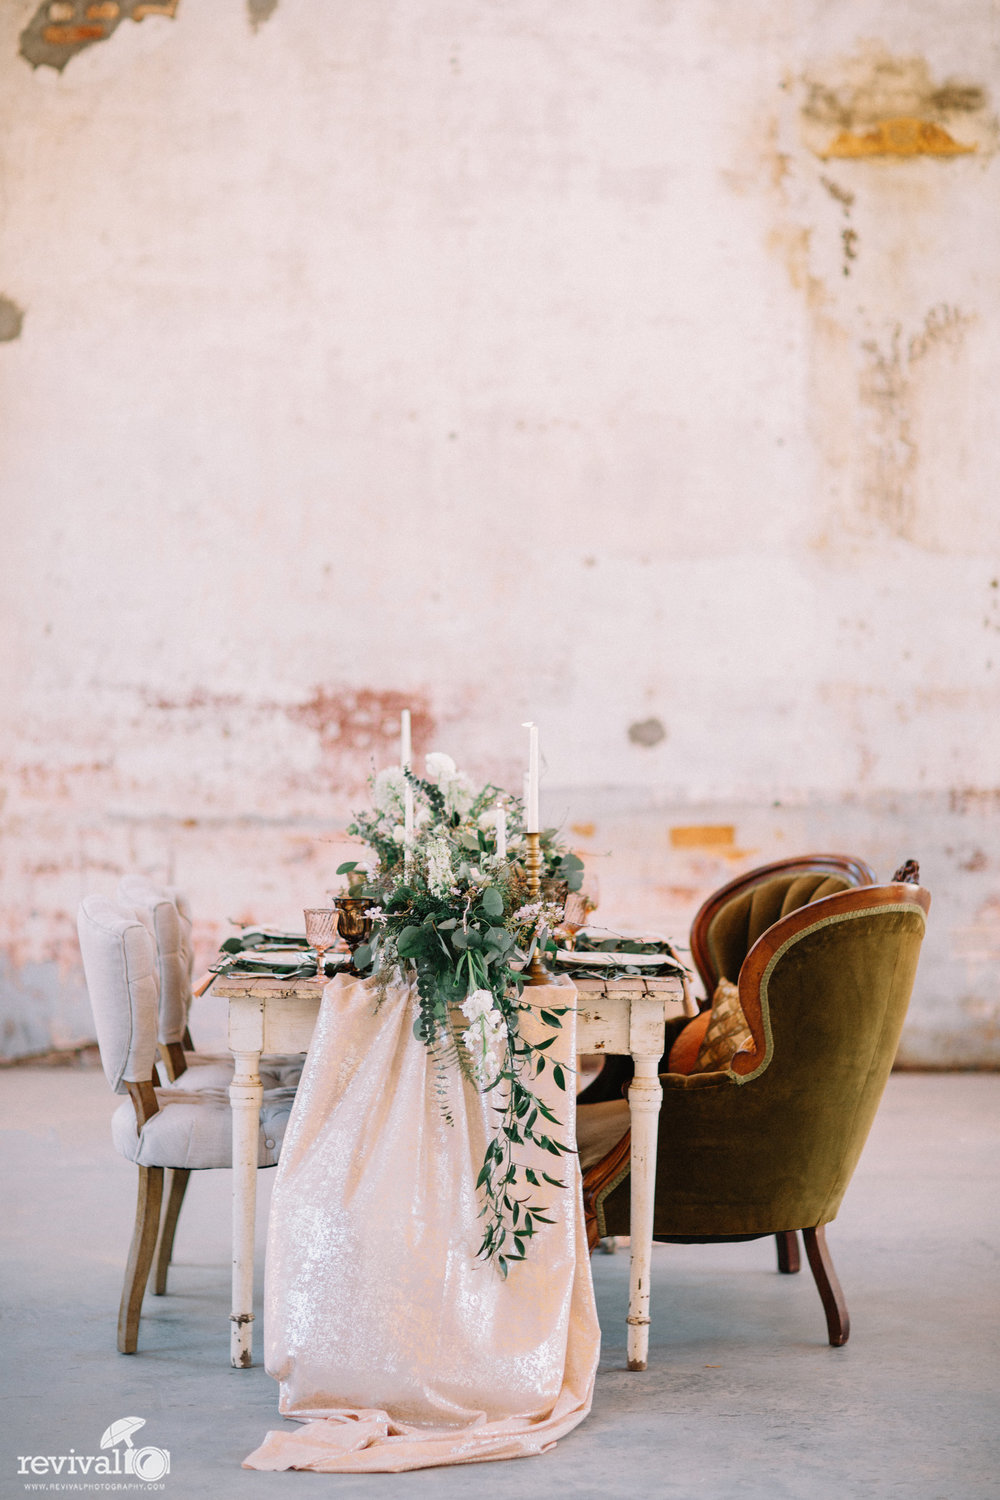 Southern Cotton Mill Romantic Industrial Shoot - A Twist on the Classic Southern Wedding Styled Shoot at Providence Cotton Mill, Maiden NC Photography by Revival Photography www.revivalphotography.com